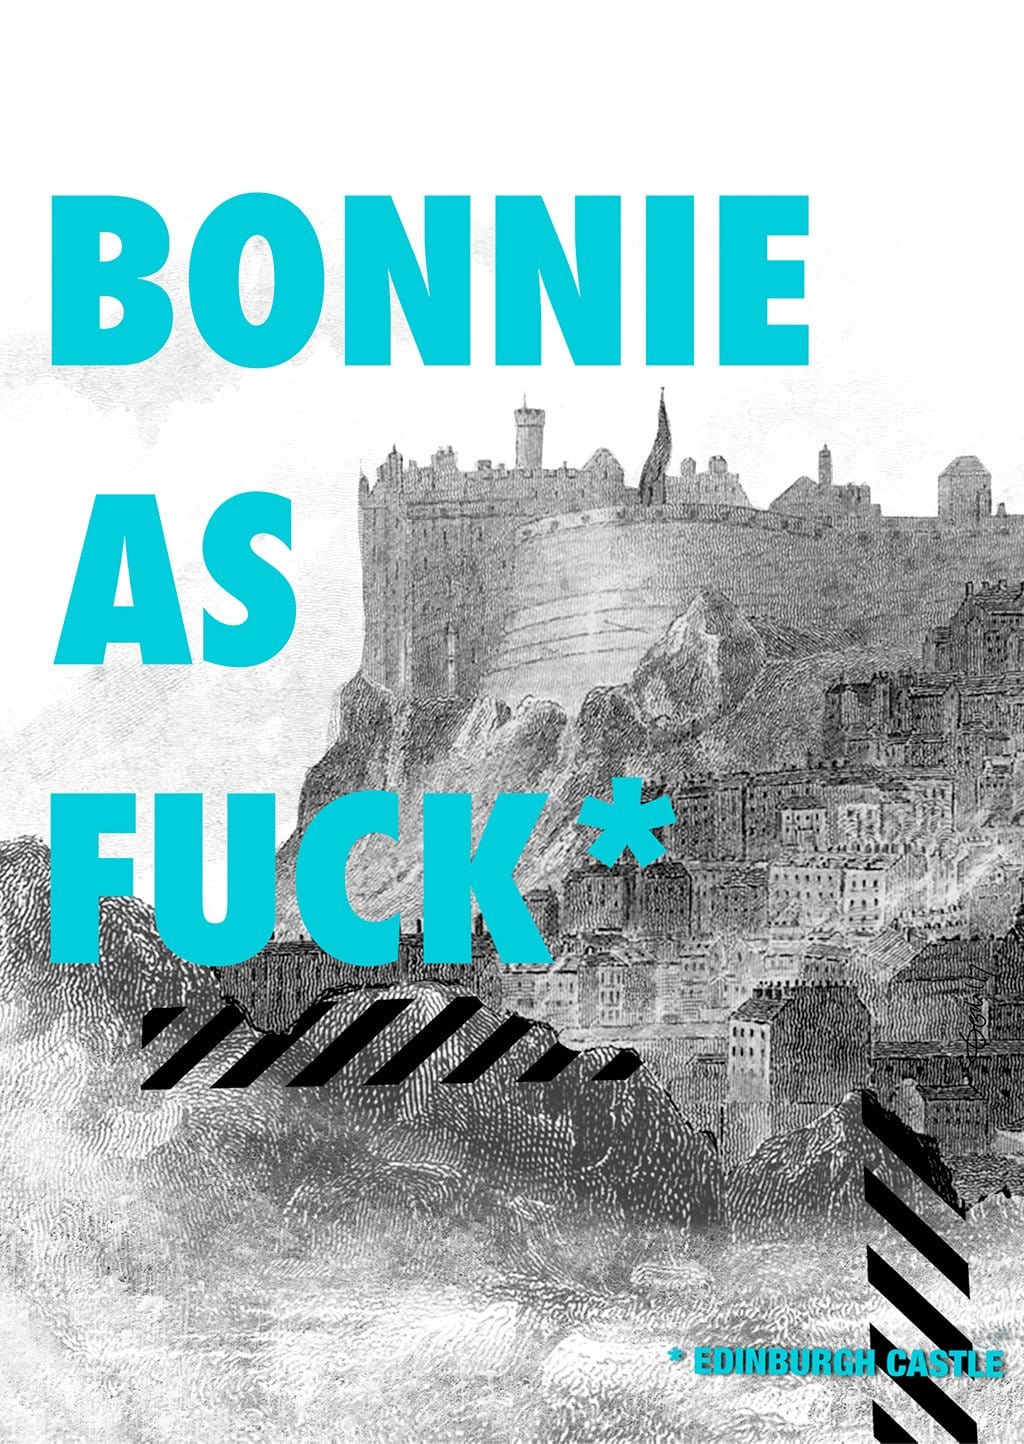 Bonnie Edinburgh Castle Greeting Card